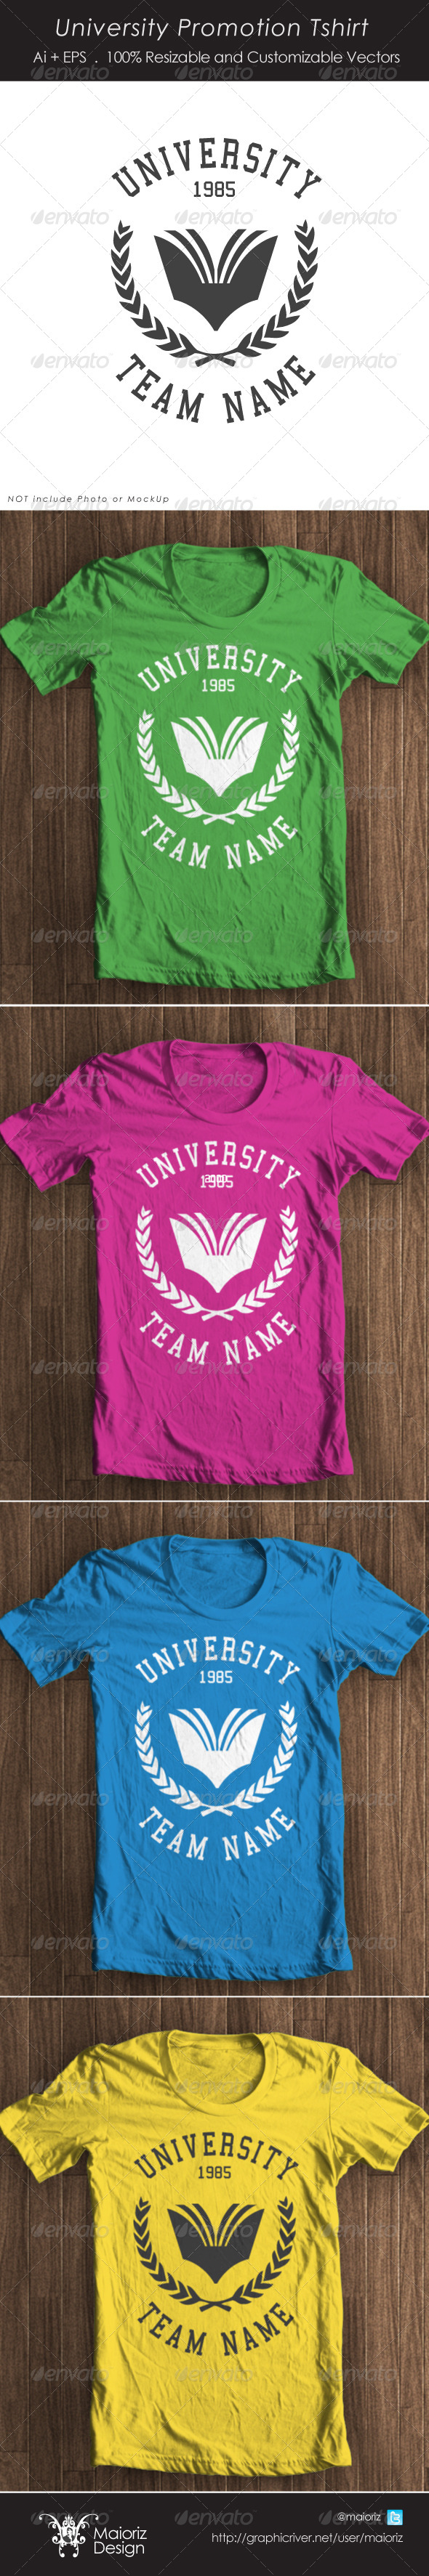 University Promotion Tshirt - T-Shirts